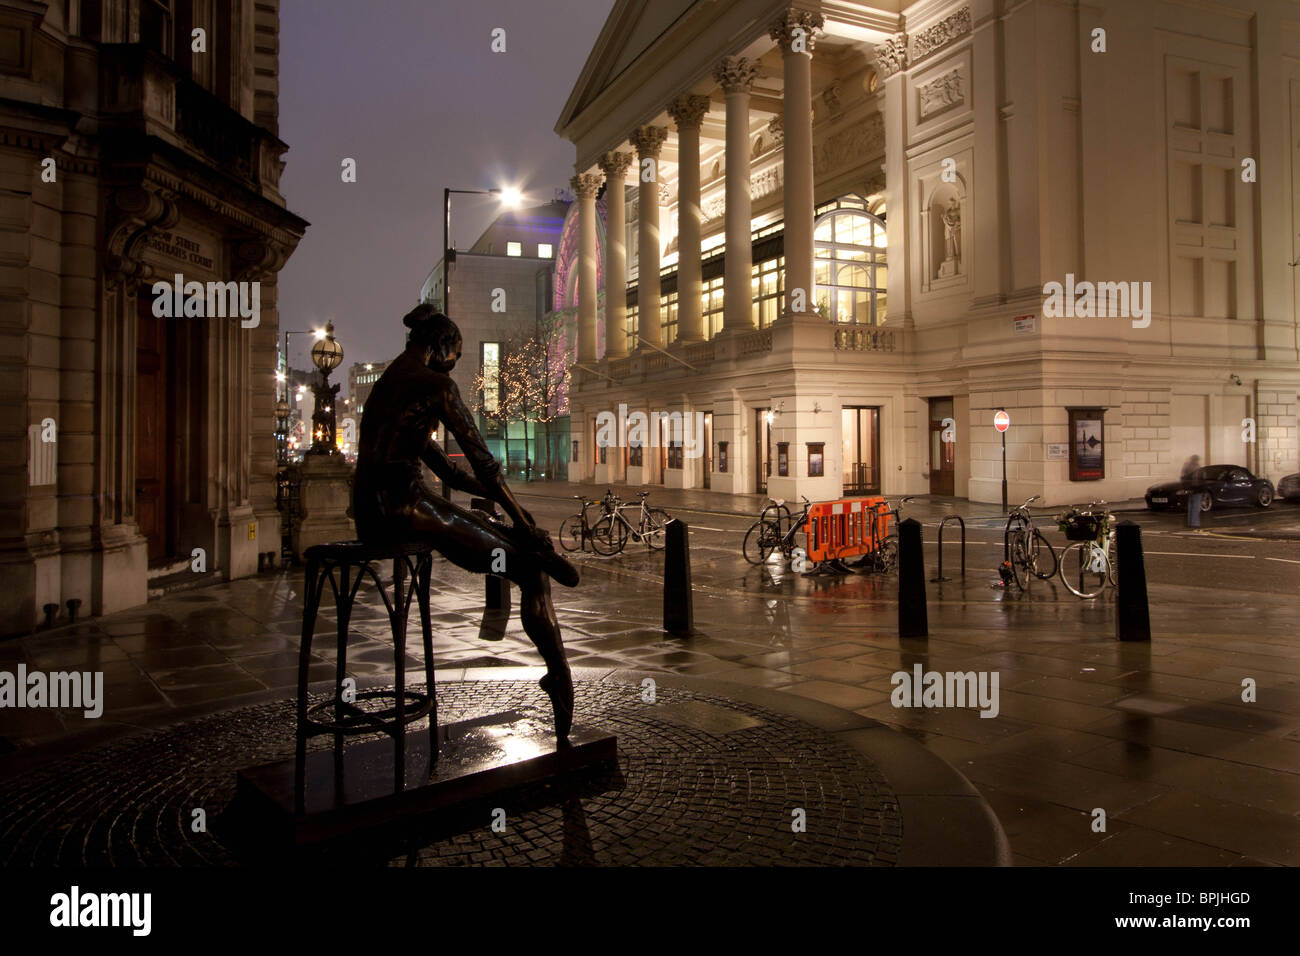 The Ballerina Statue Outside The Royal Opera House Covent Garden Stock Photo Royalty Free